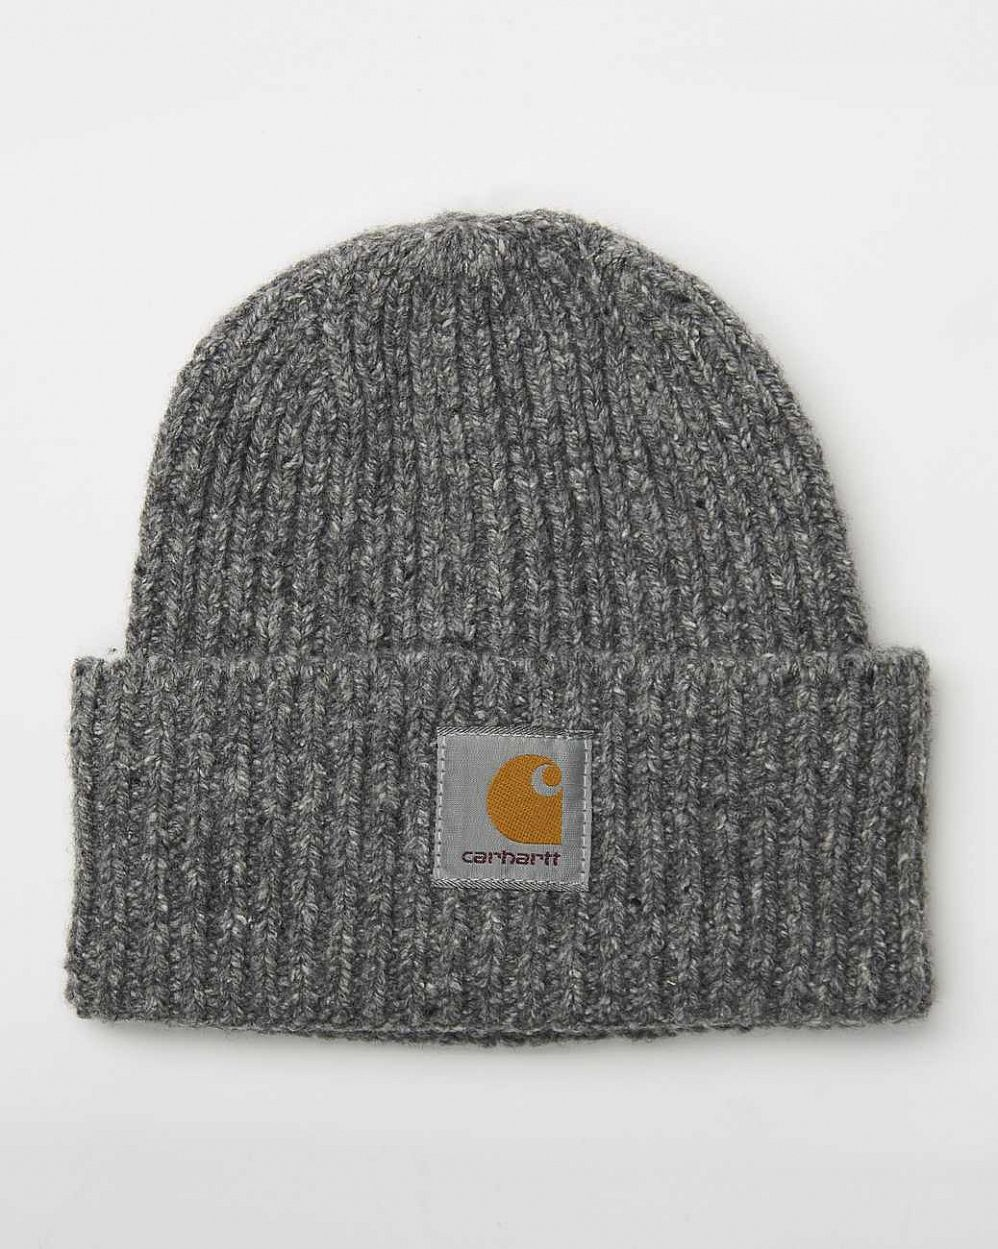 Шапка Carhartt Anglistic Beanie Dark Heather Grey отзывы